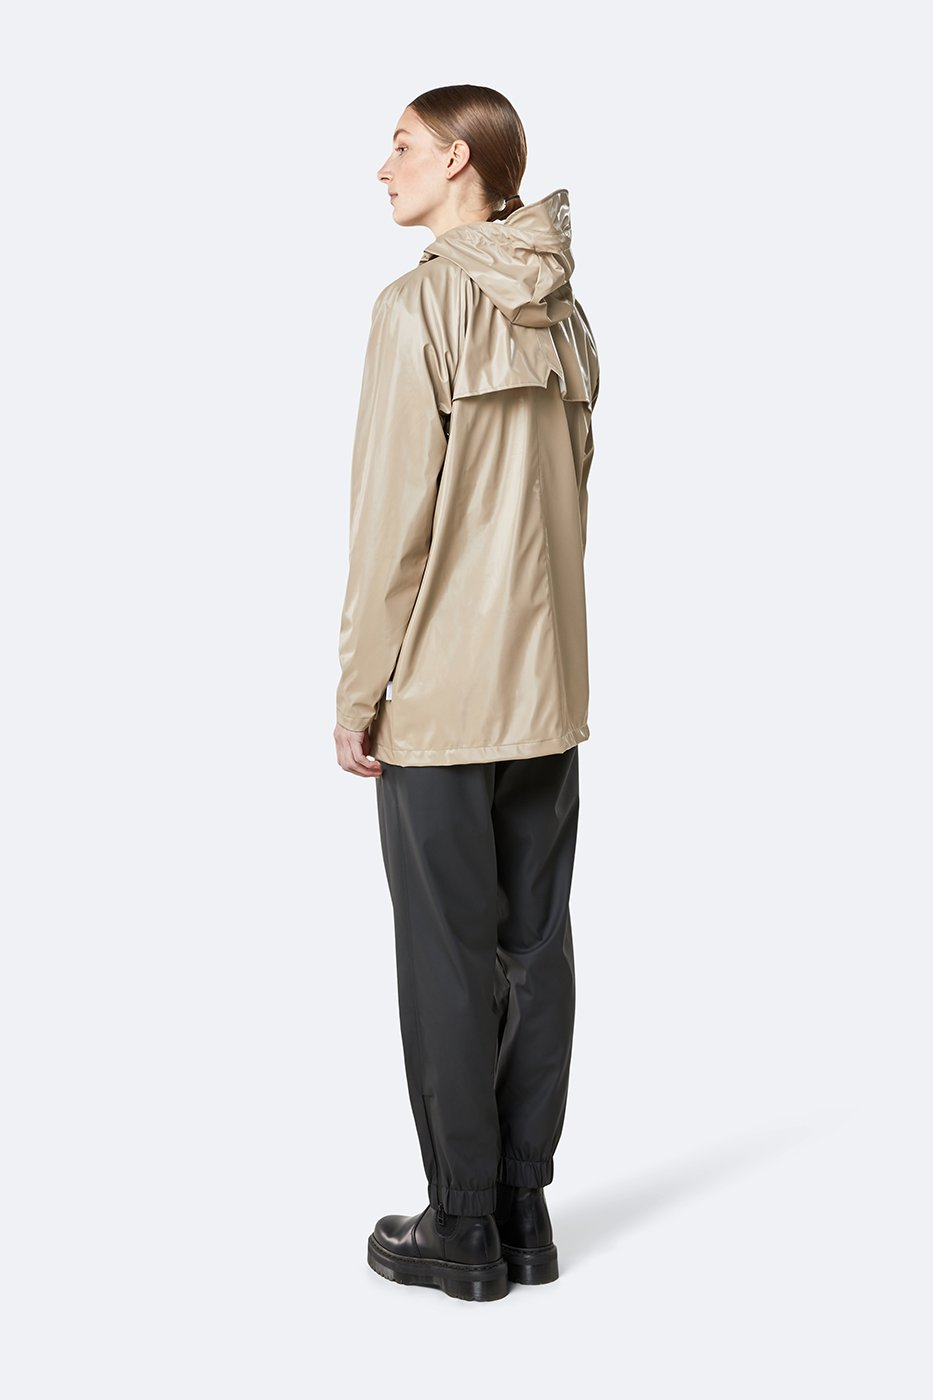 Rains - 1267 - Short Coat sadetakki - Shiny Beige